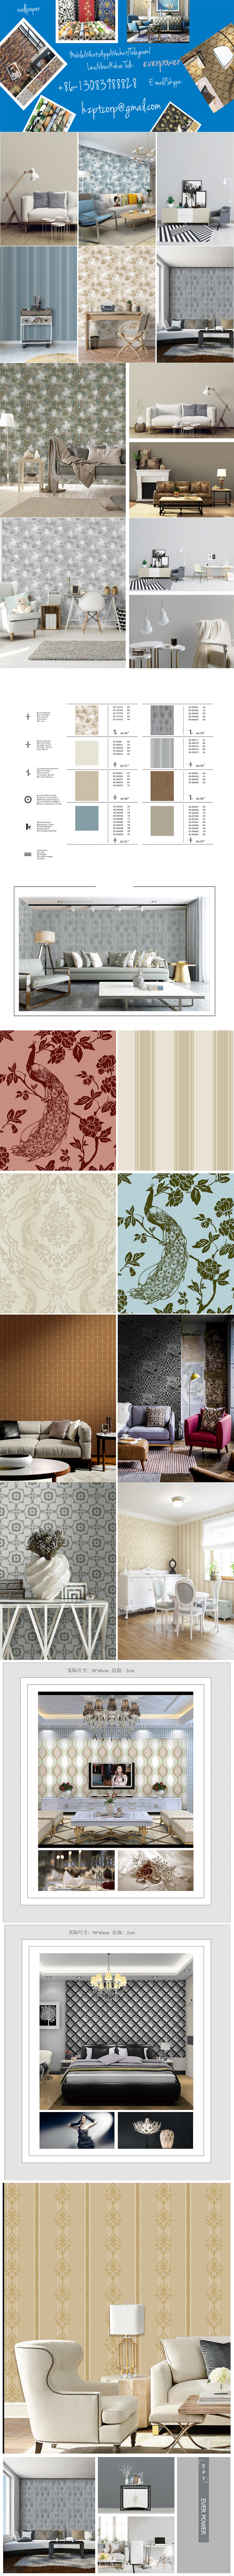 Embossed Beautiful New Design 1.06m Wallpaper Wall Paper Factory in China